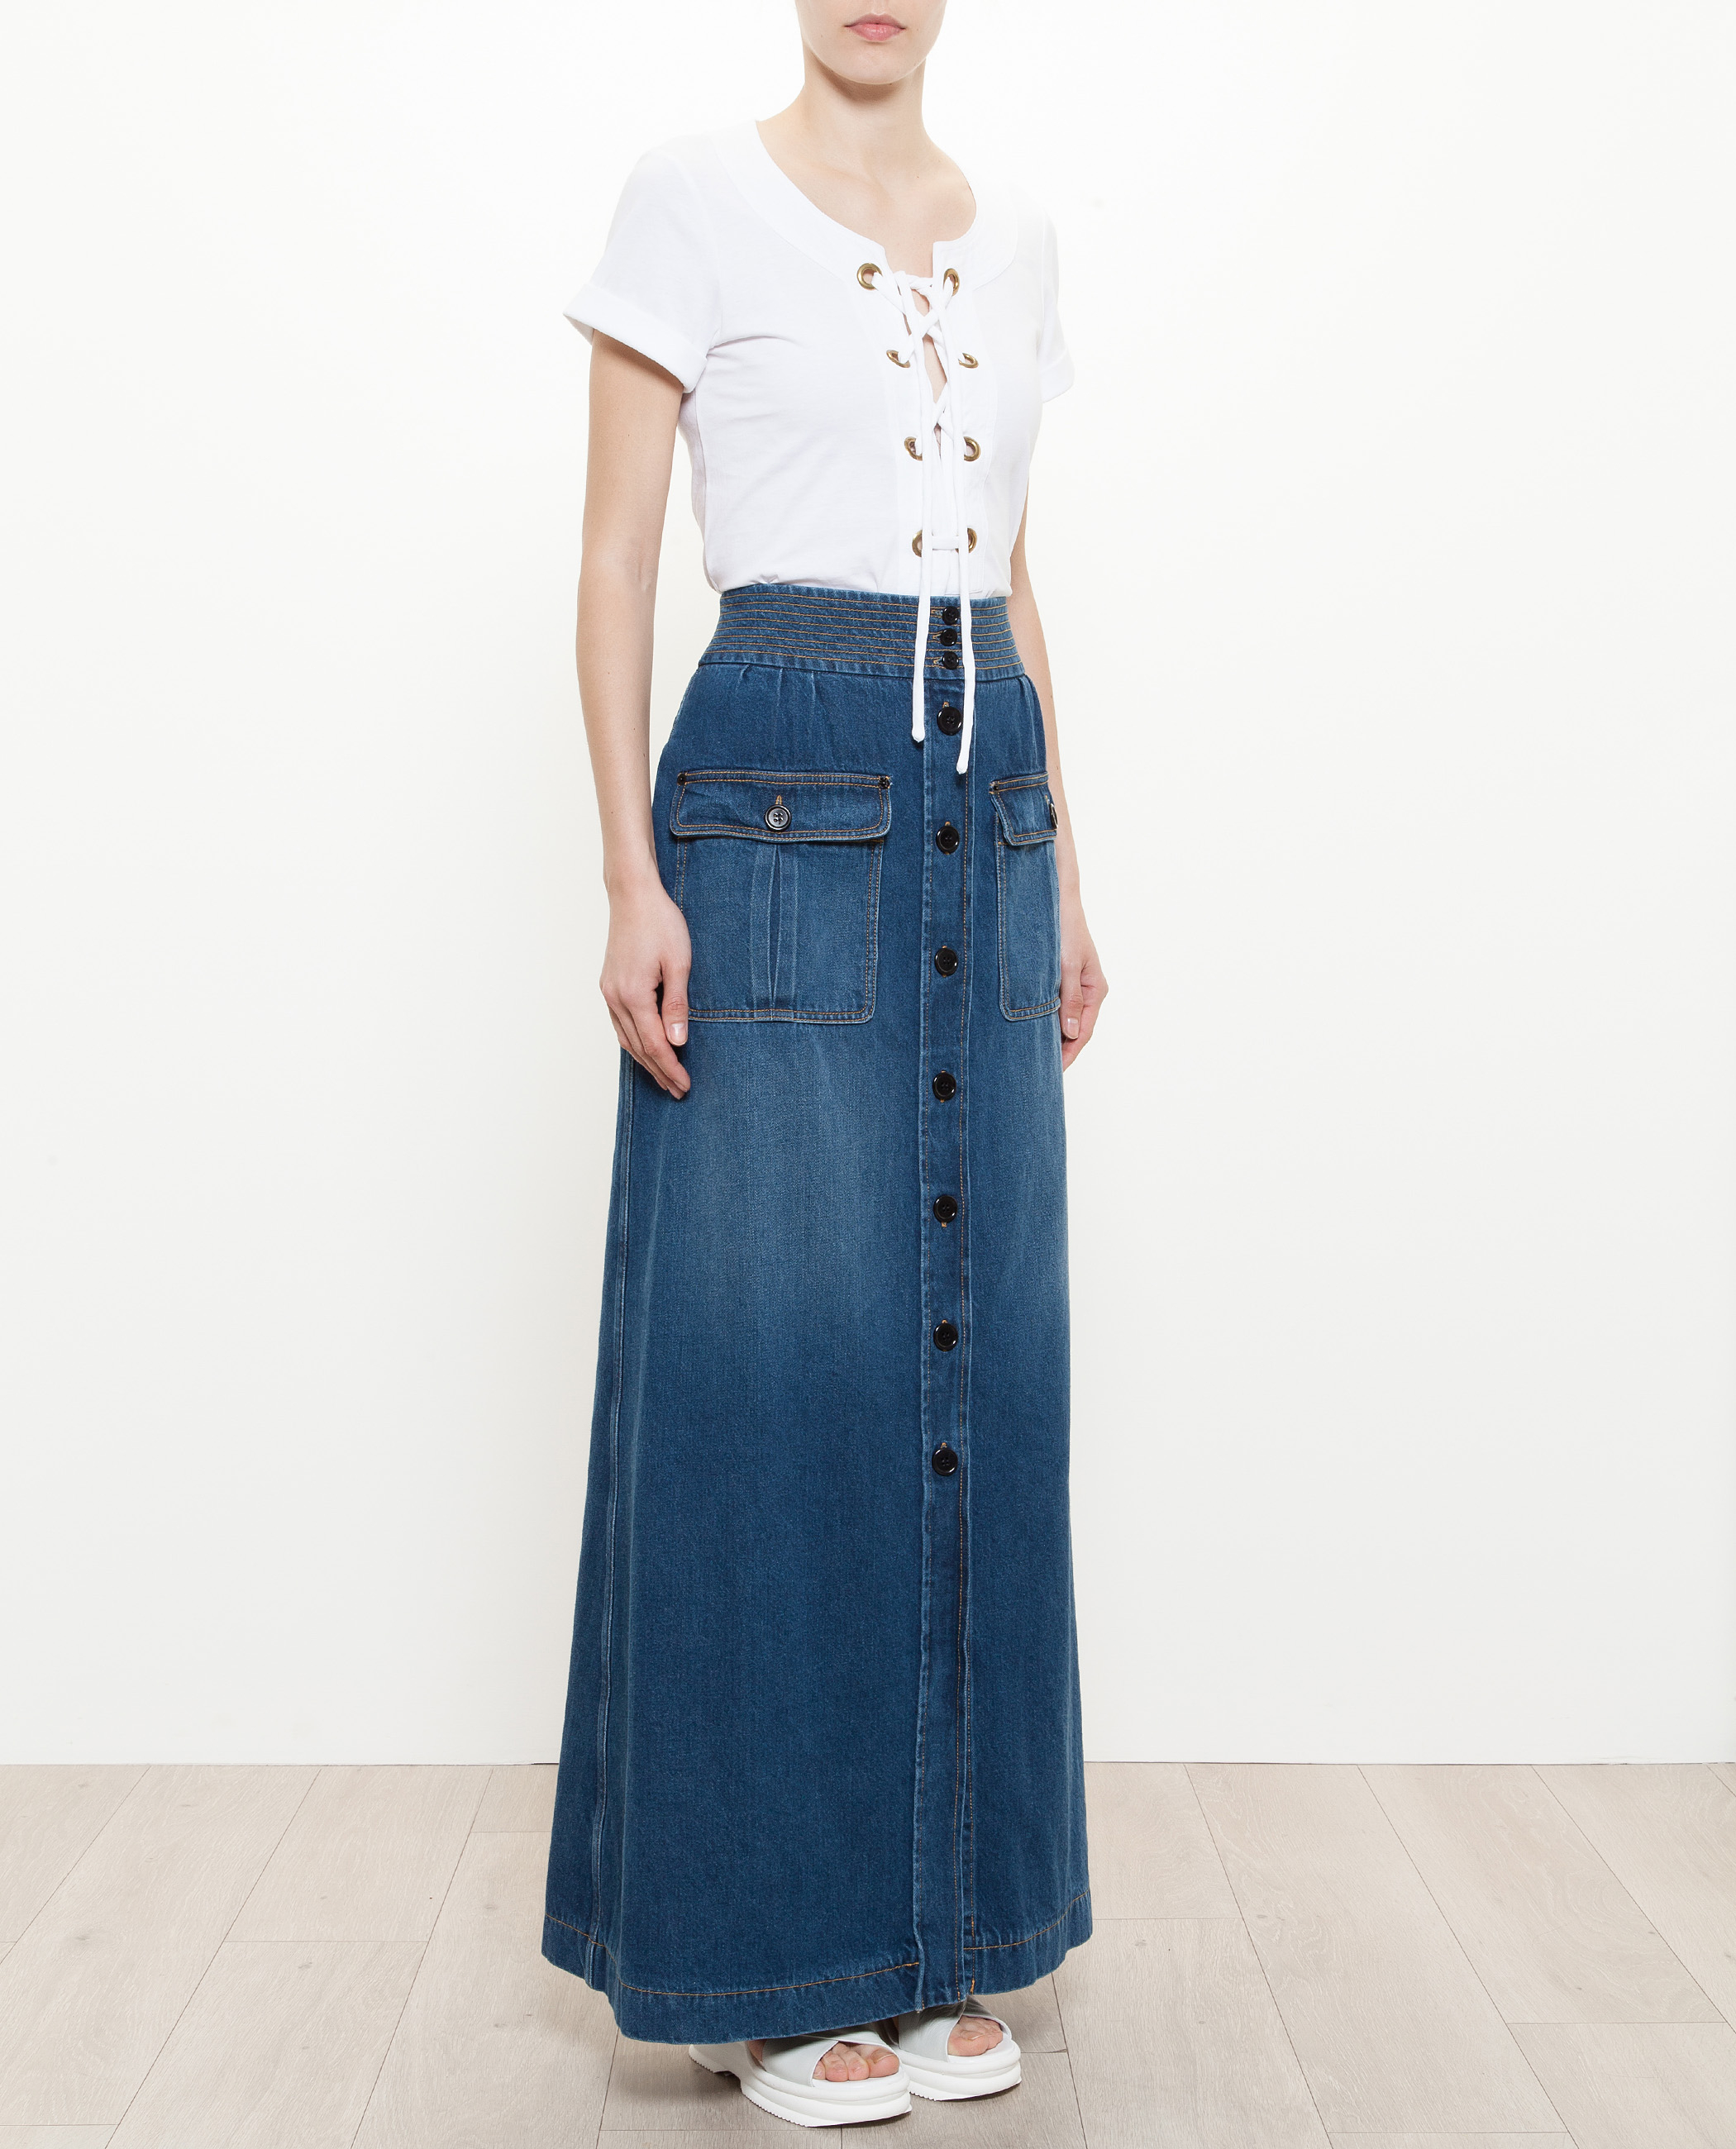 1bb1922d8a49 Lyst - Chloé Long Denim Skirt in Blue